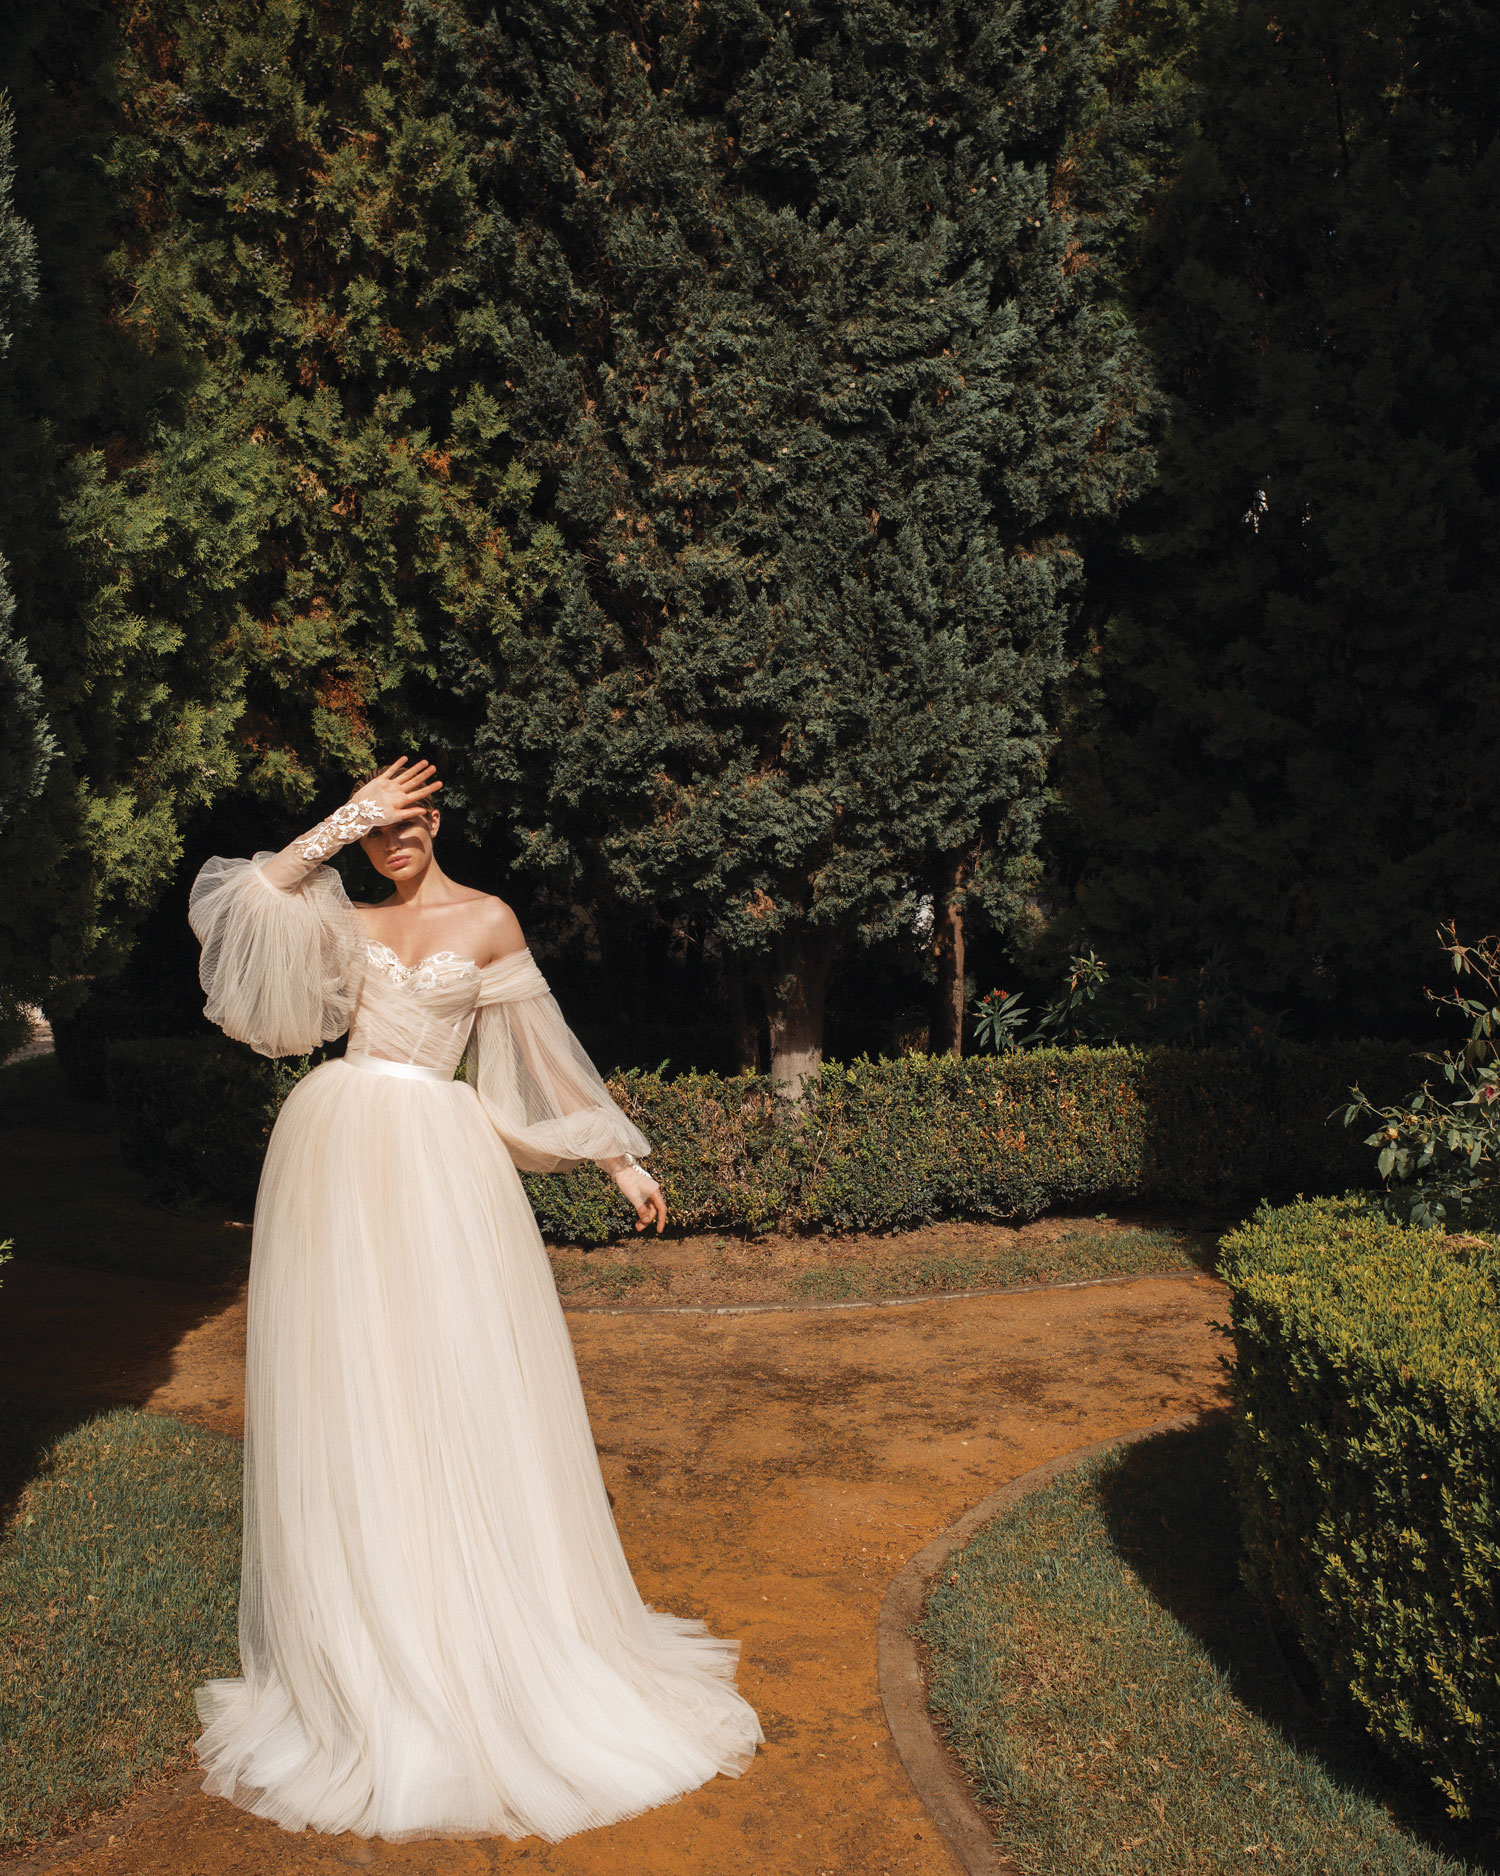 Galia Lahav wedding dress with puffy sleeves wedding fashion trend